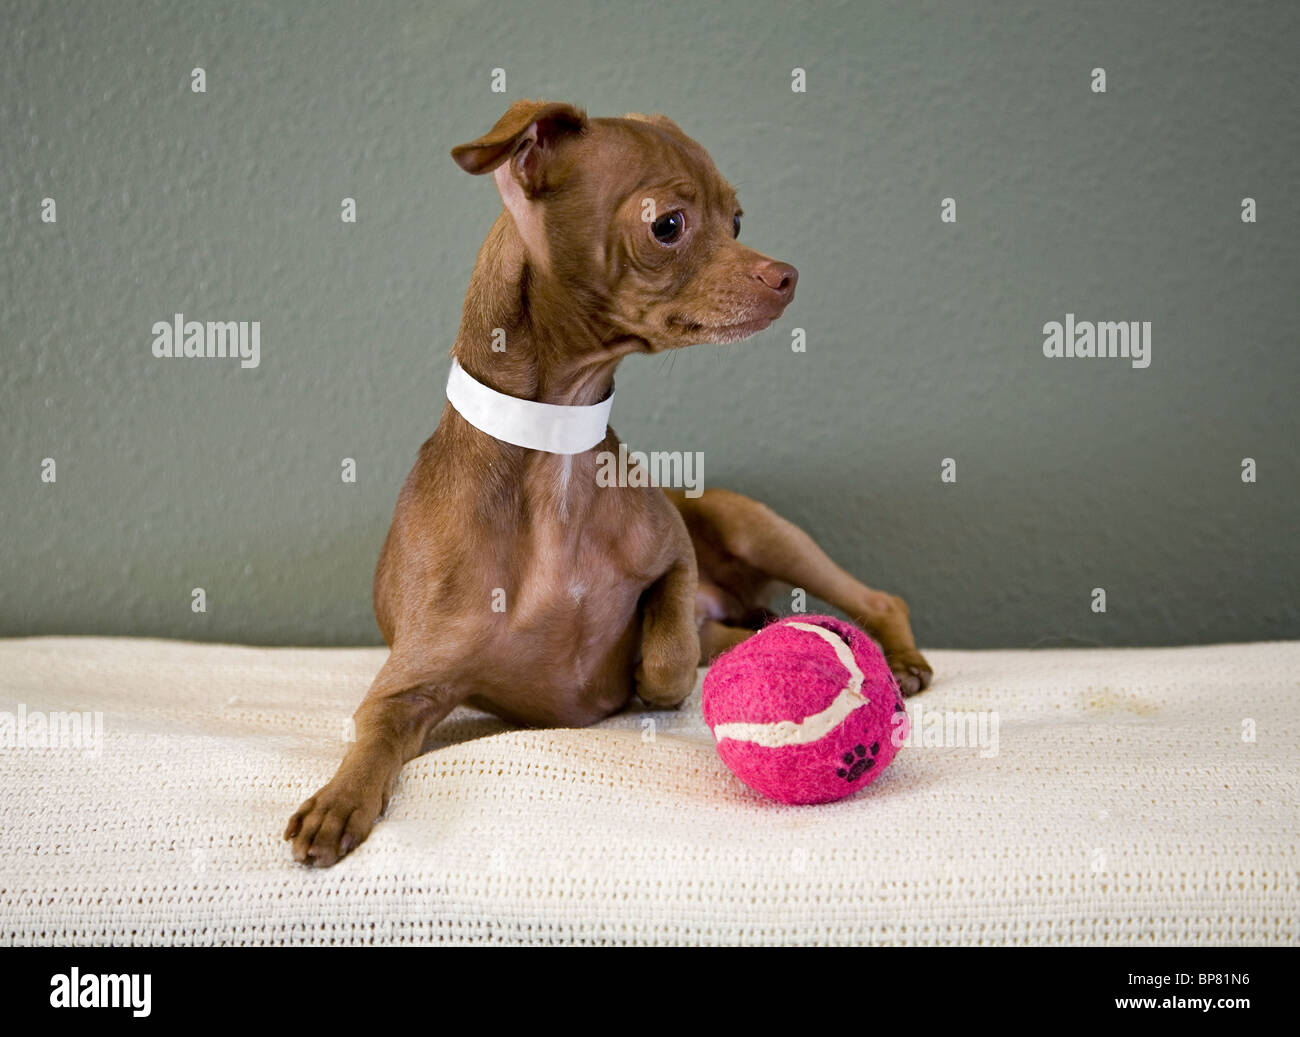 Portrait of a Mexican hairless chihuahua dog playing with a tennis ball. the dog is up for adoption from a Humane - Stock Image